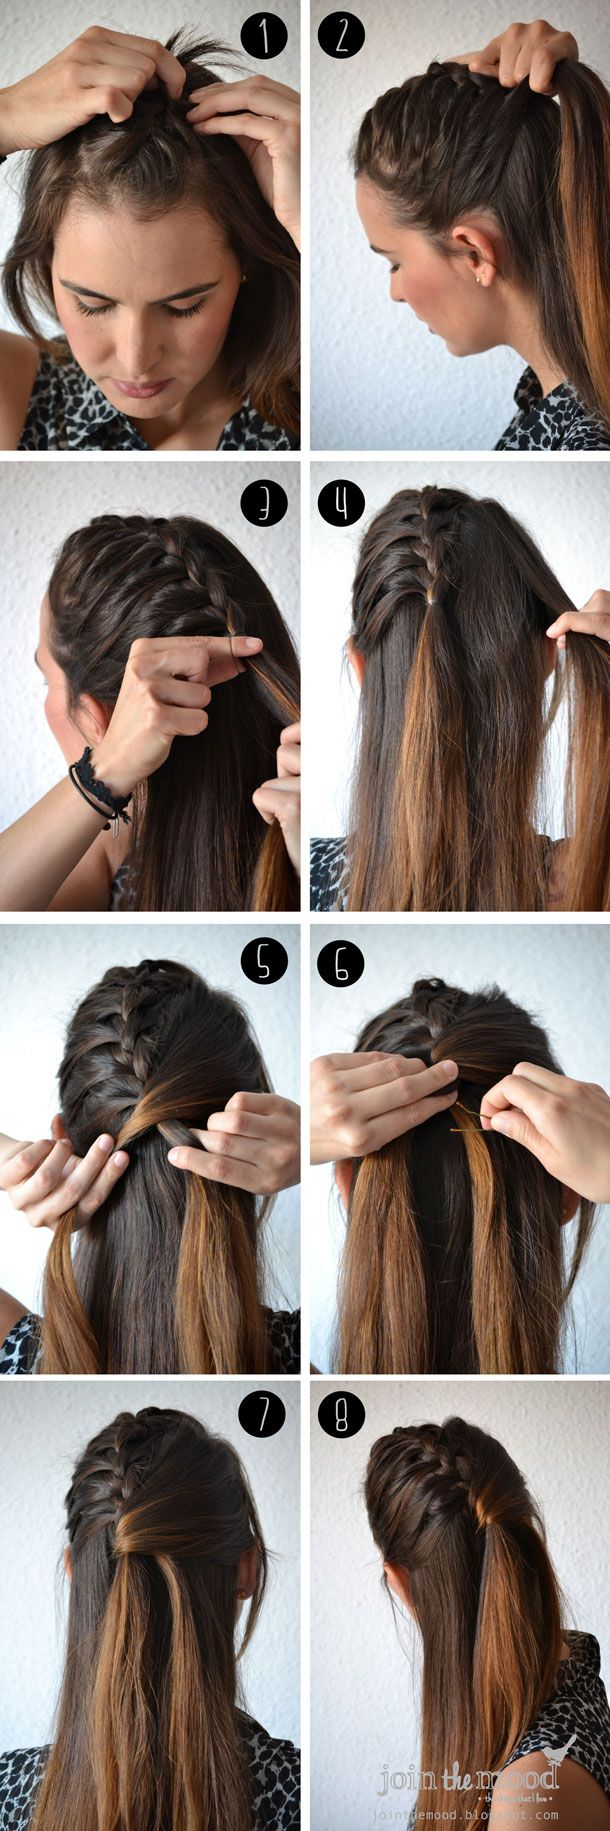 Hello today i want to show you this hairstyle that is very easy